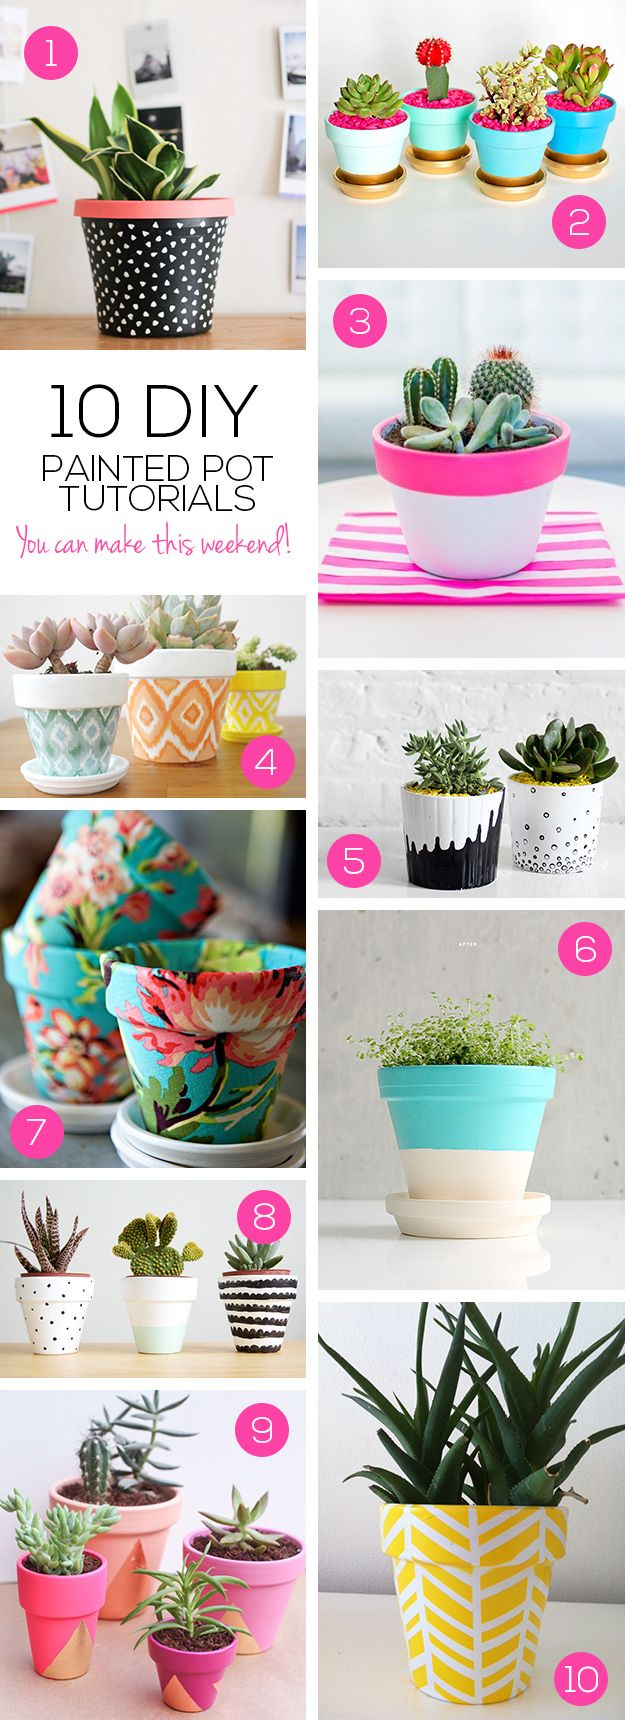 10 DIY Pretty Plant Pots You Can Create This Weekend #diy #garden #pot #CraftsDIYSerendipity #crafts #diy #projects #tutorials Craft and DIY Projects and Tutorials